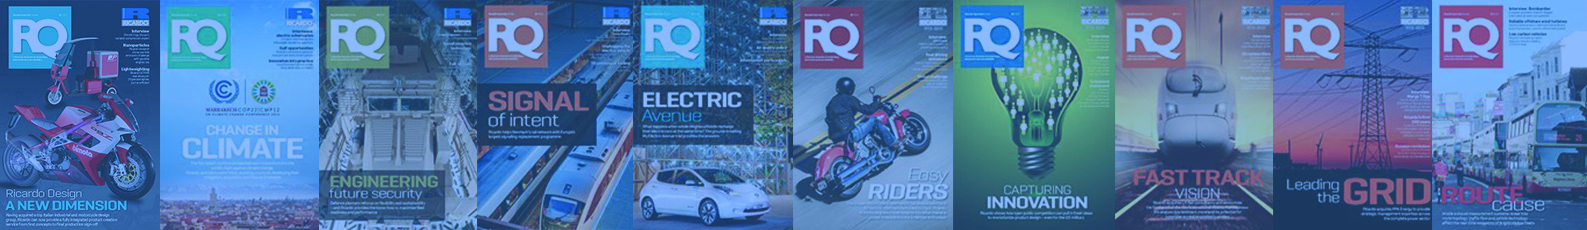 Ricardo Quarterly magazine - 2014